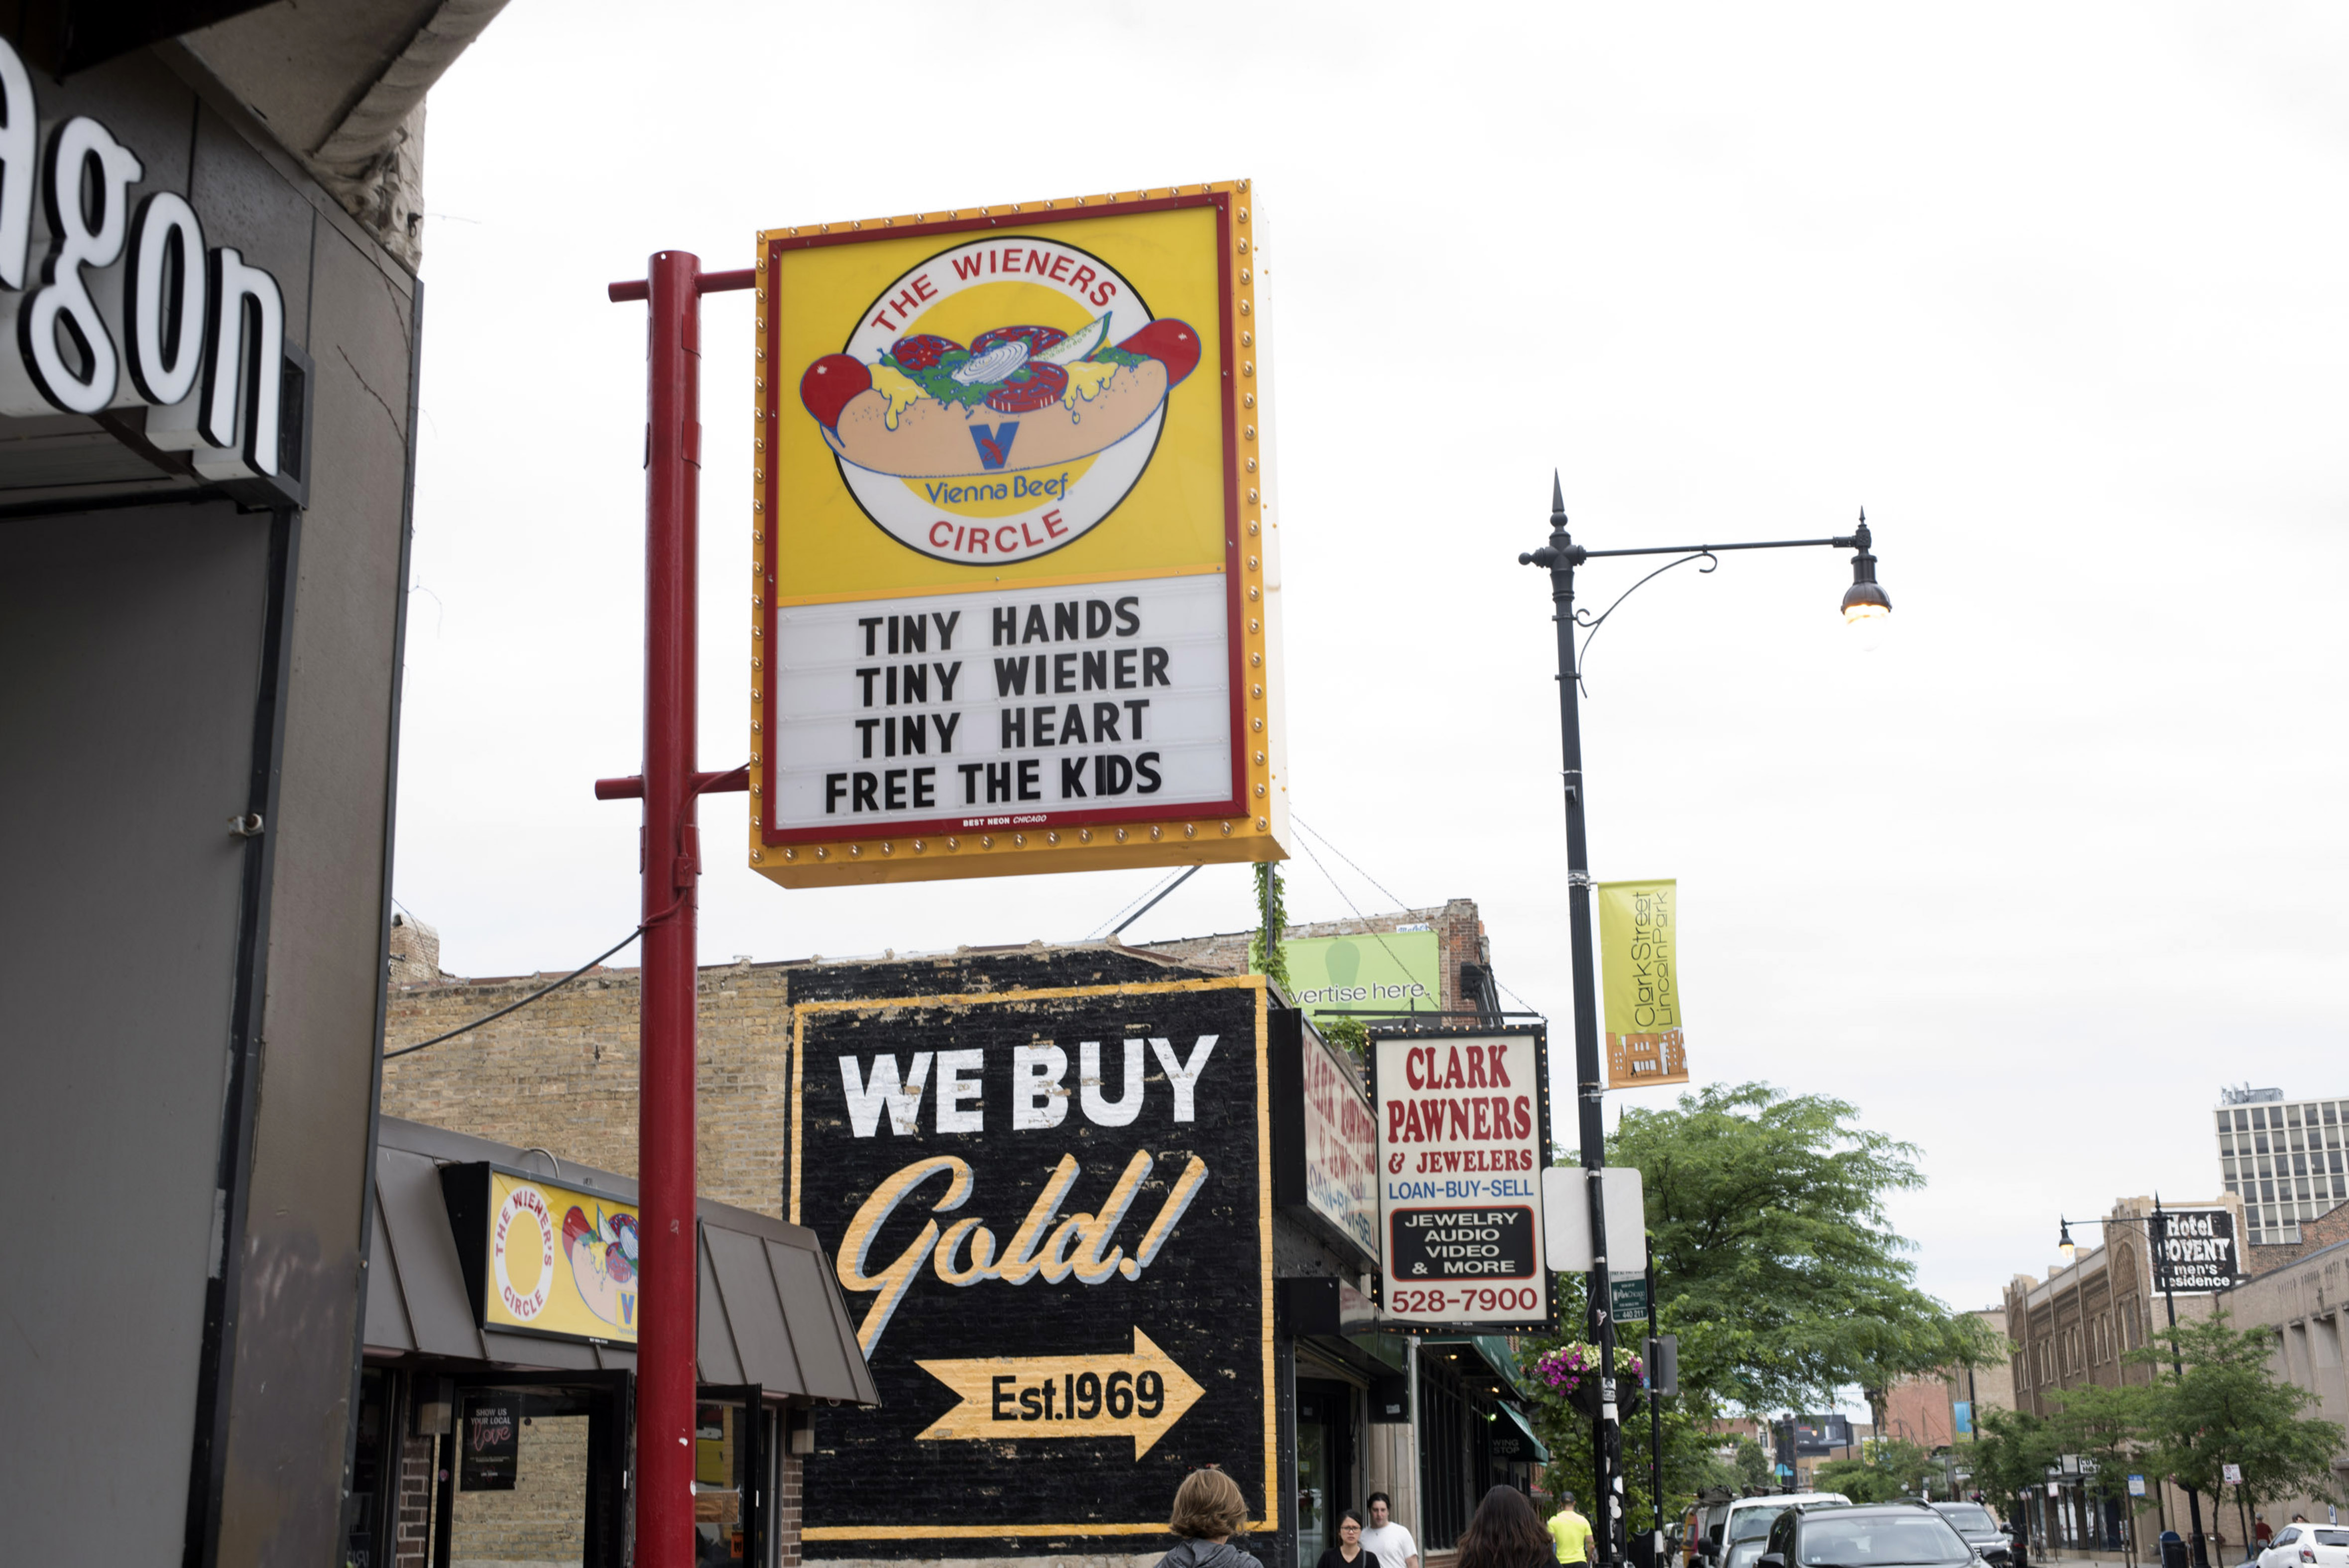 Outside The Wieners Circle